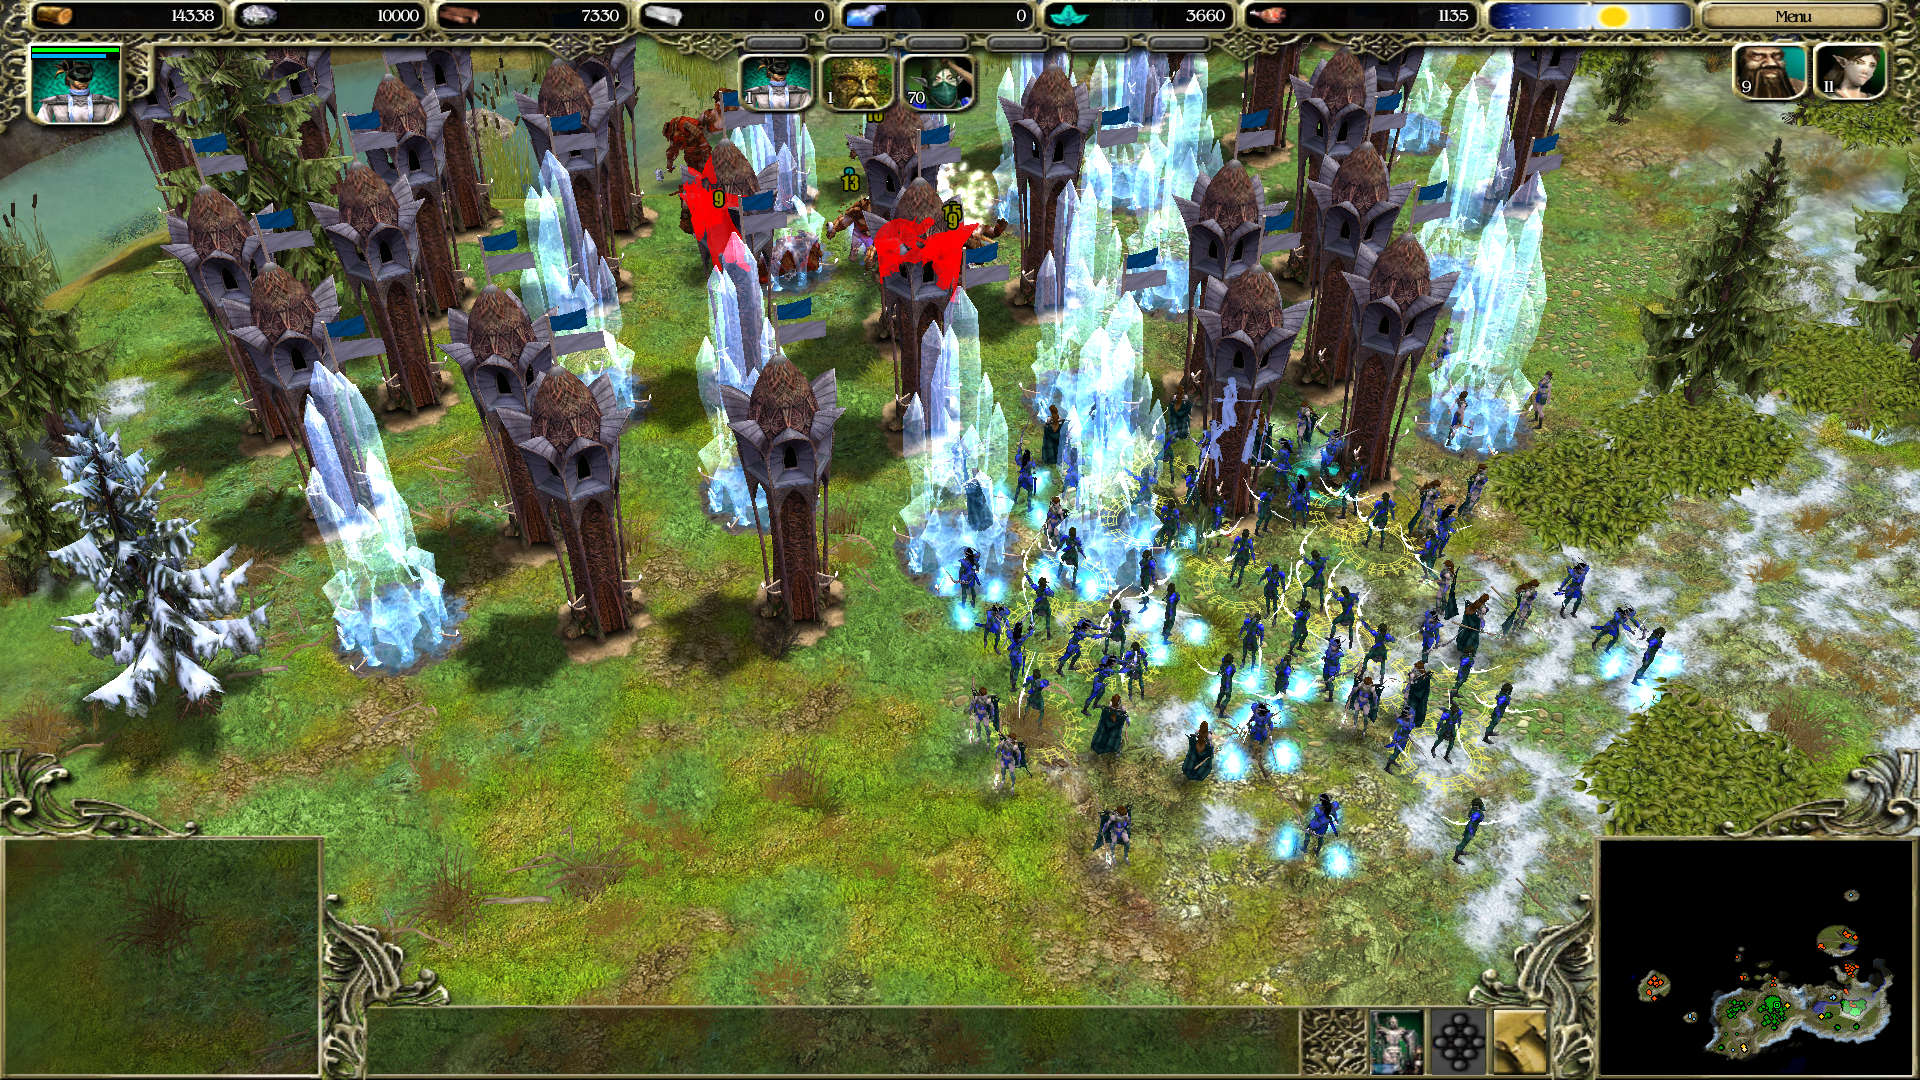 Elves defending against troll attacks, protected by lots of towers